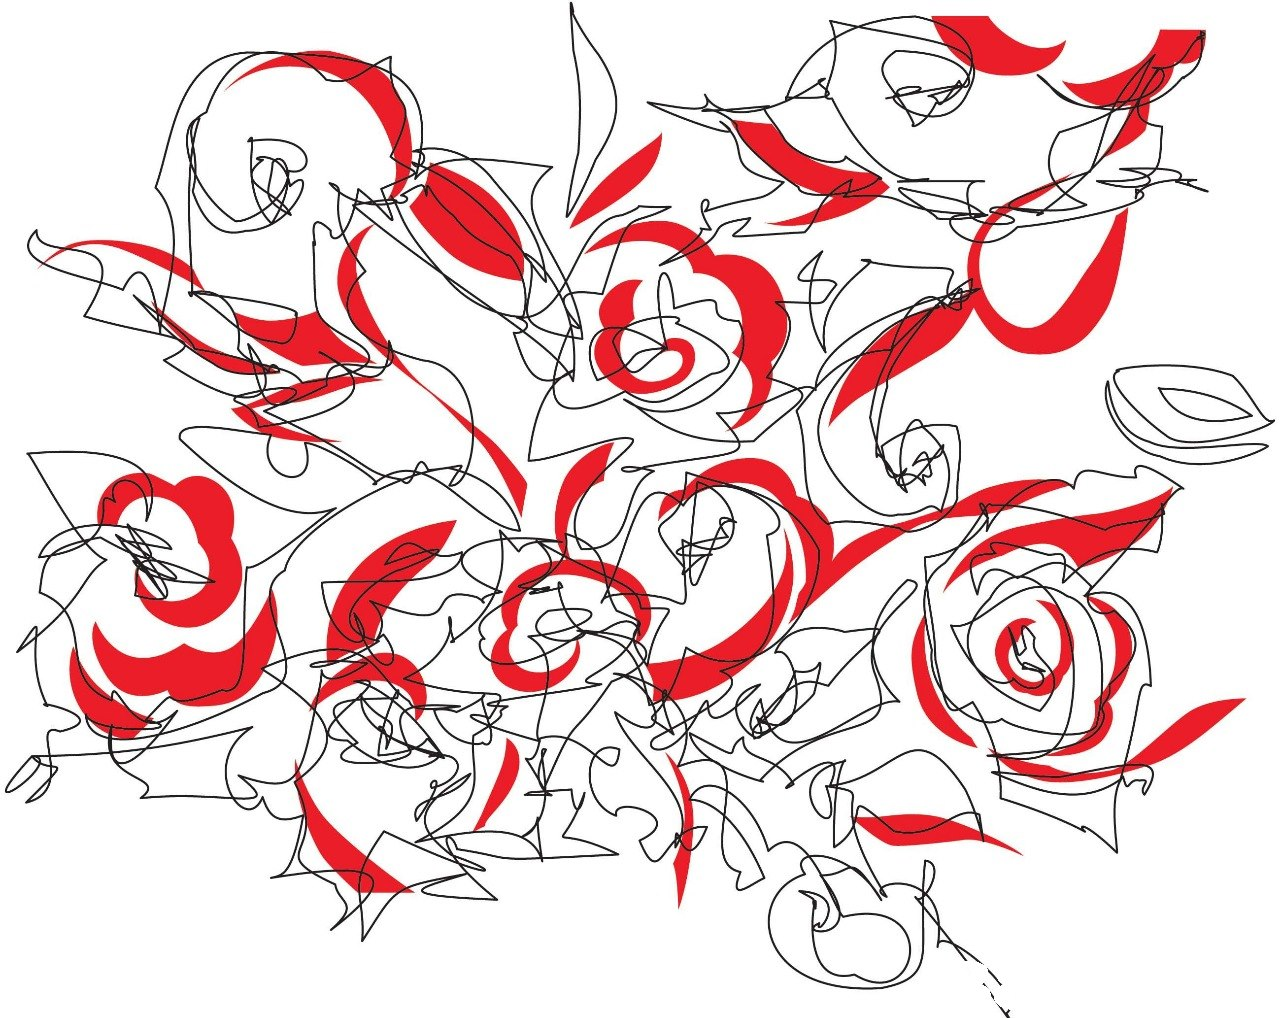 Line art,Red,Text,Drawing,Design